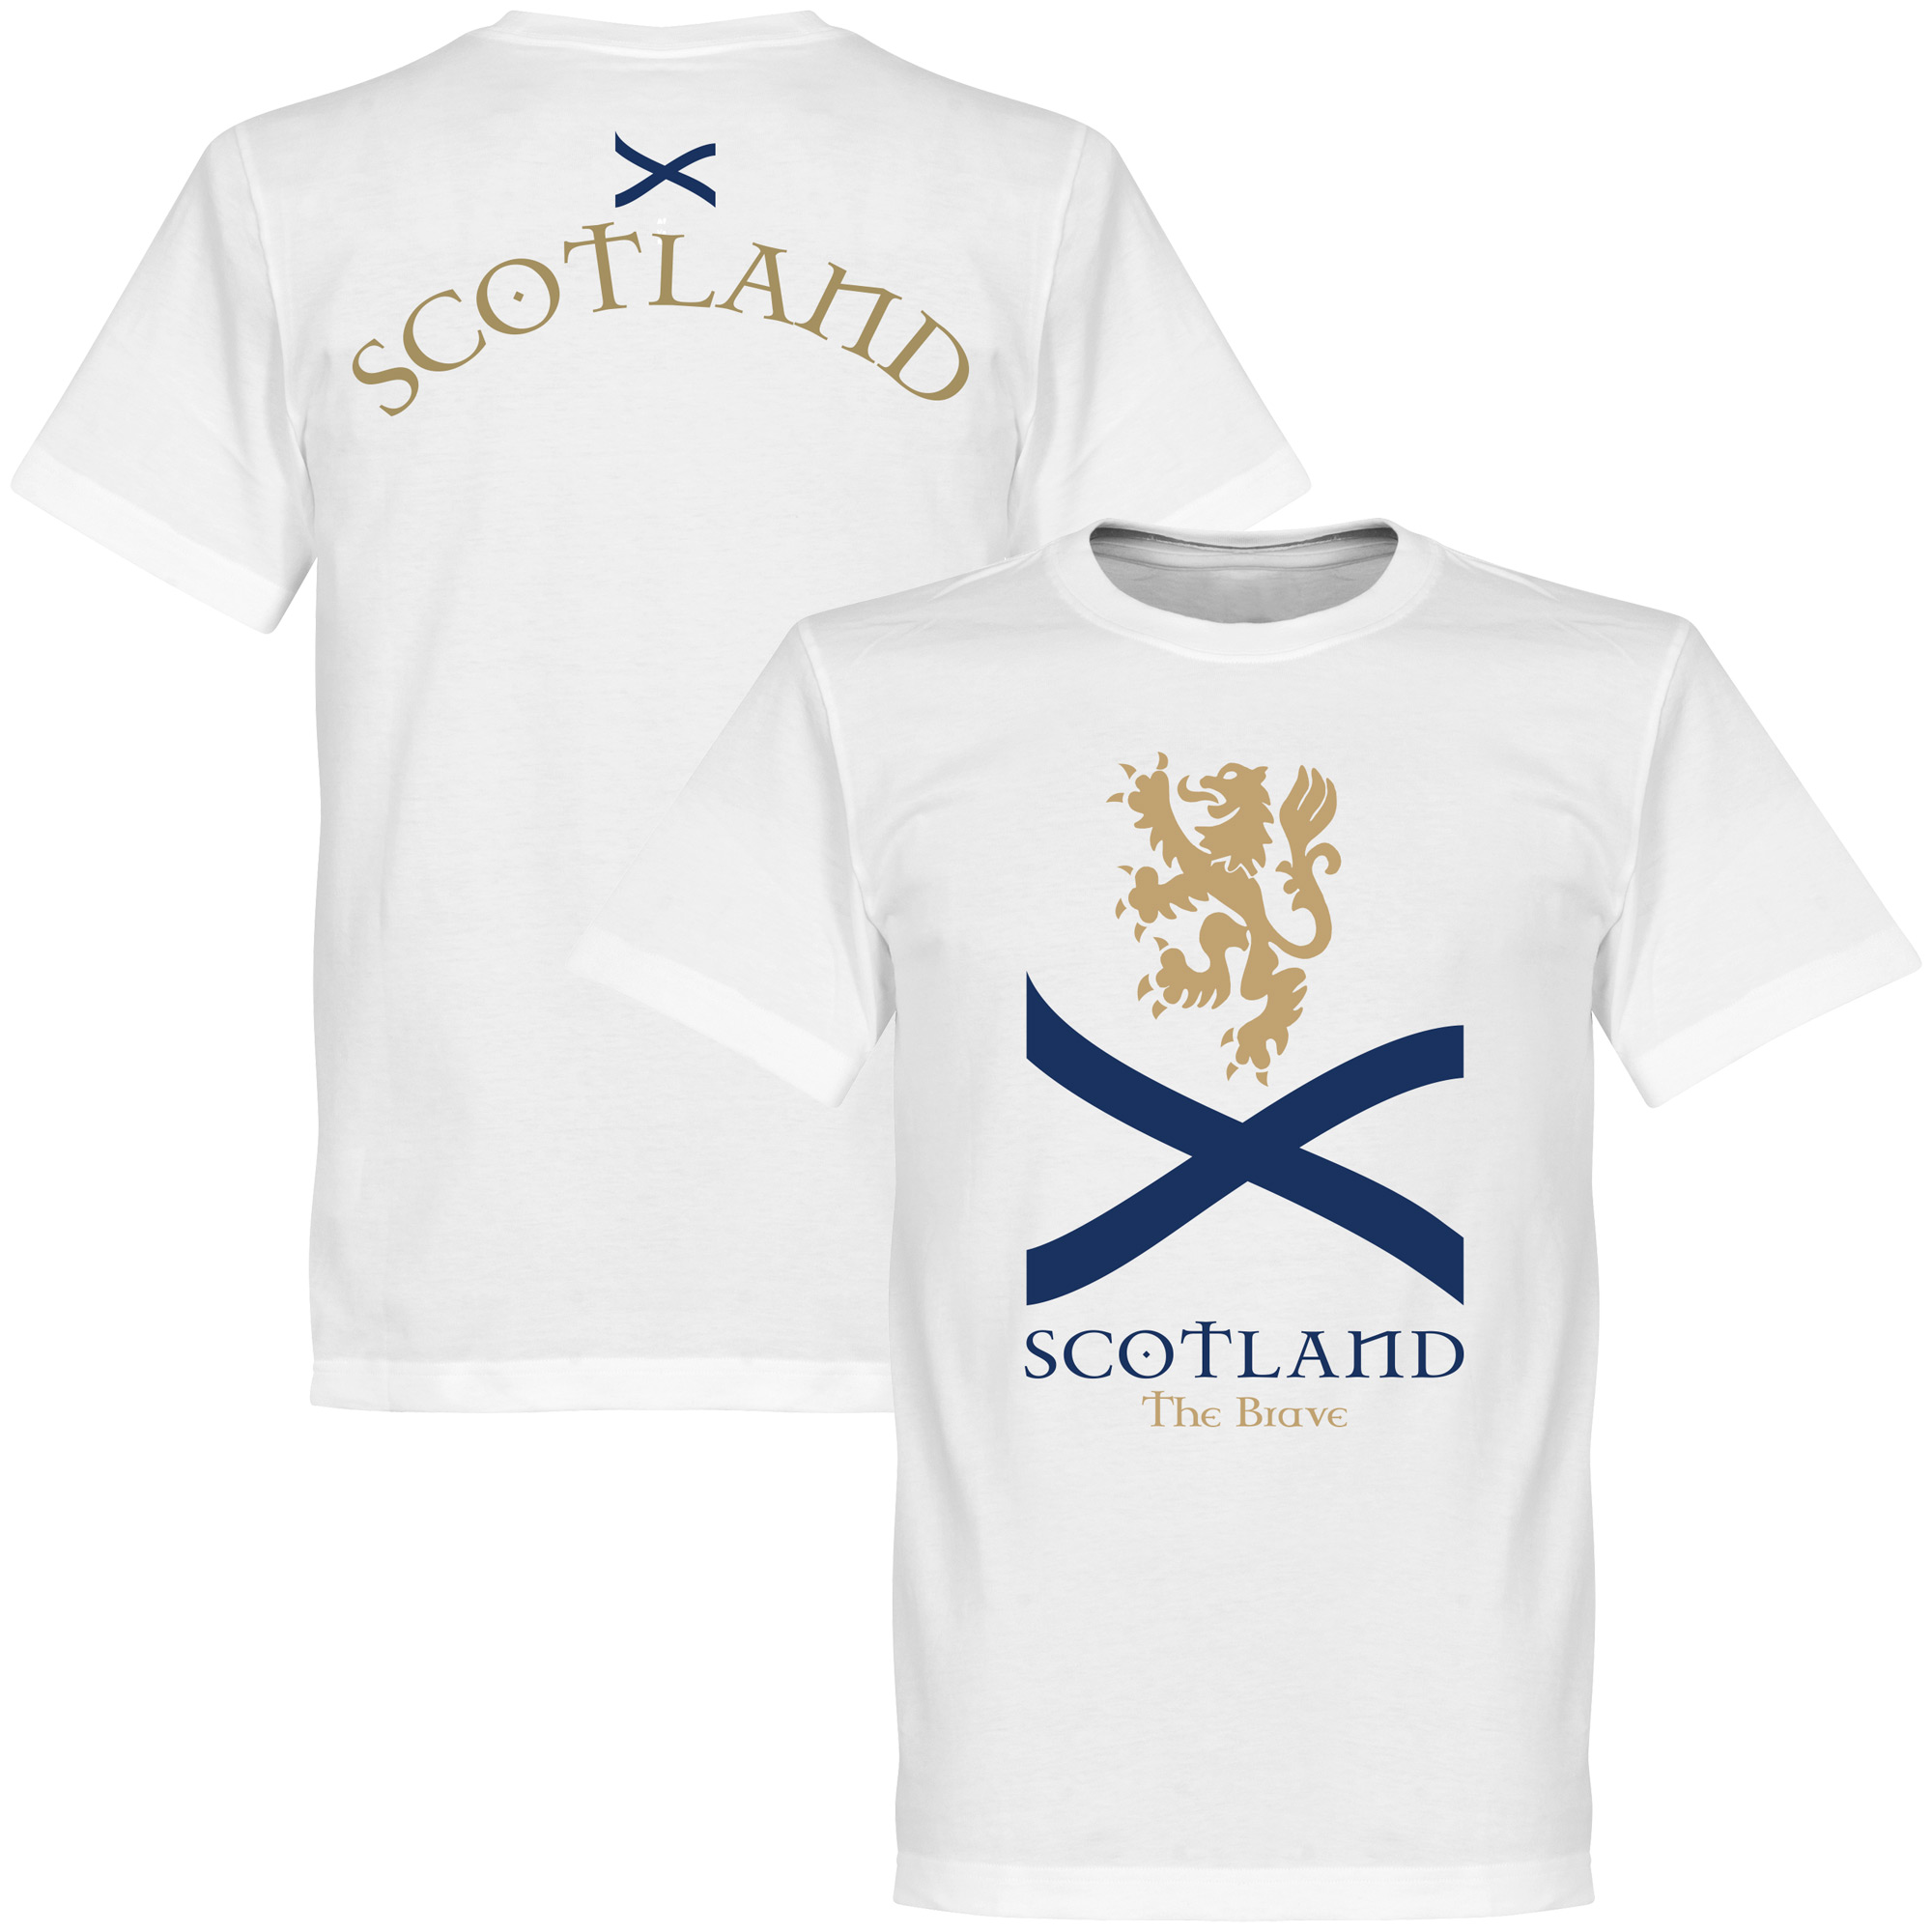 Schotland The Brave T-Shirt XS